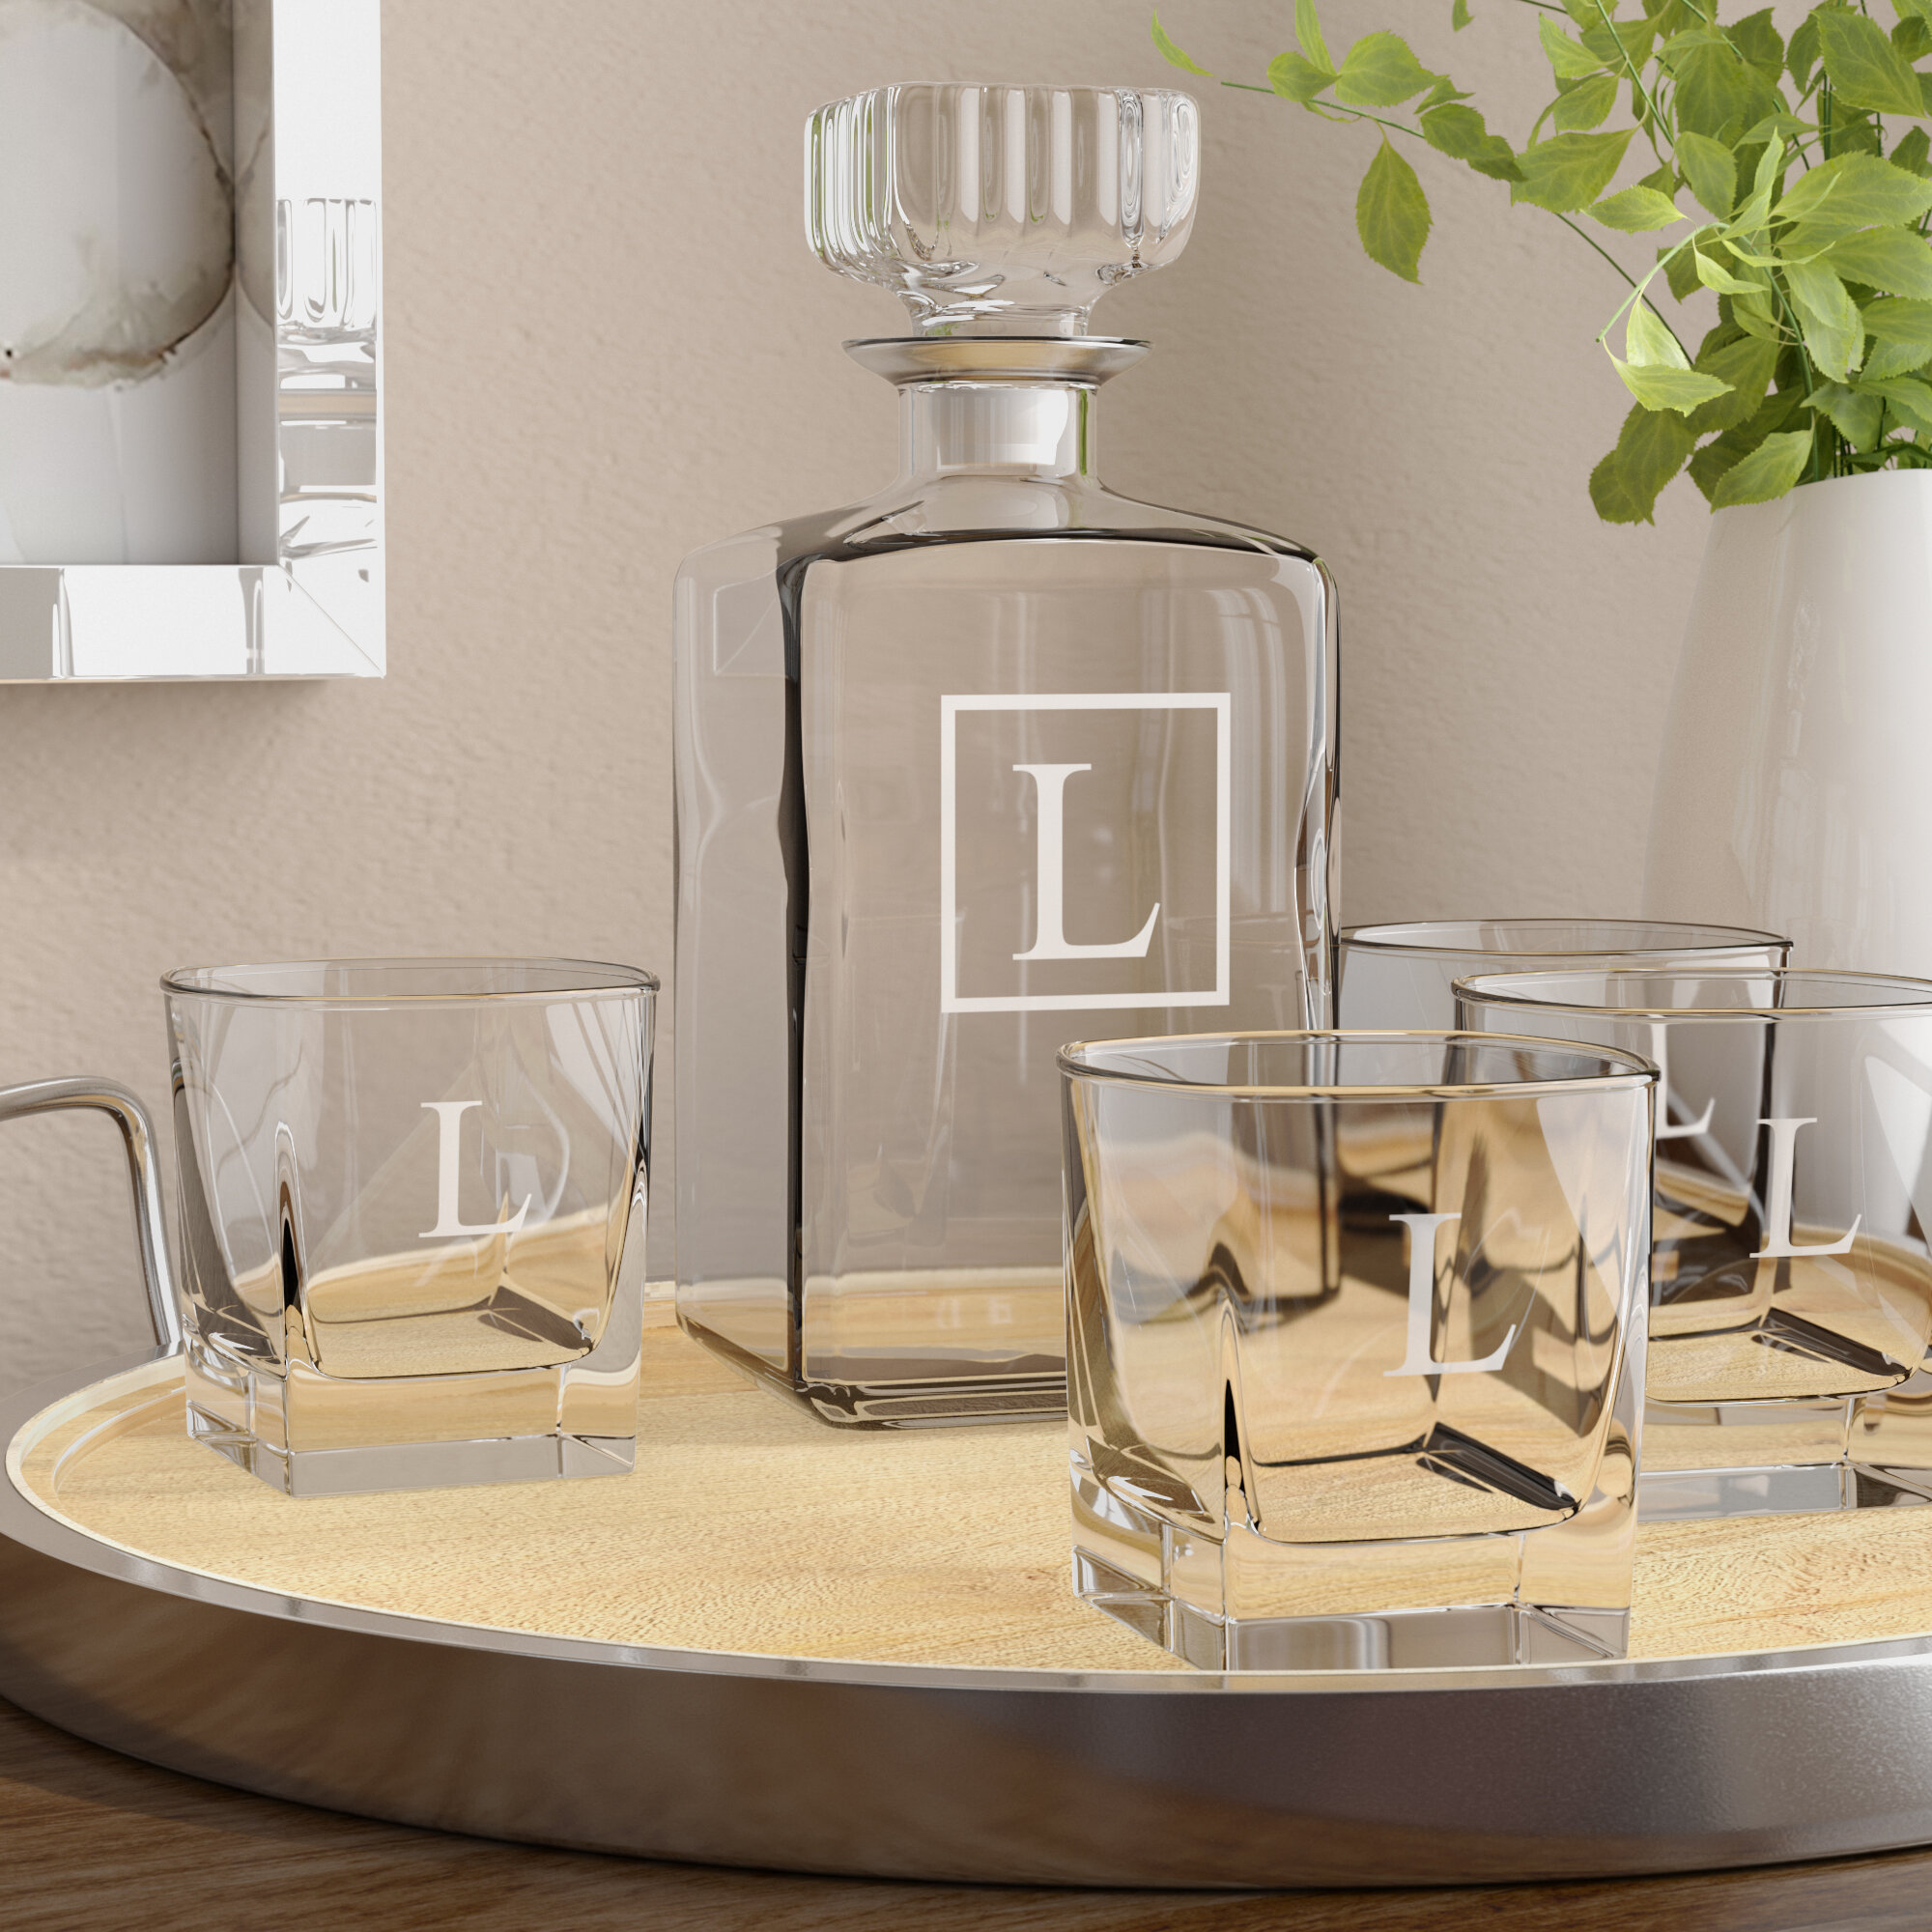 Darby Home Co Juliet 5 Piece Whiskey Decanter Set Reviews Wayfair